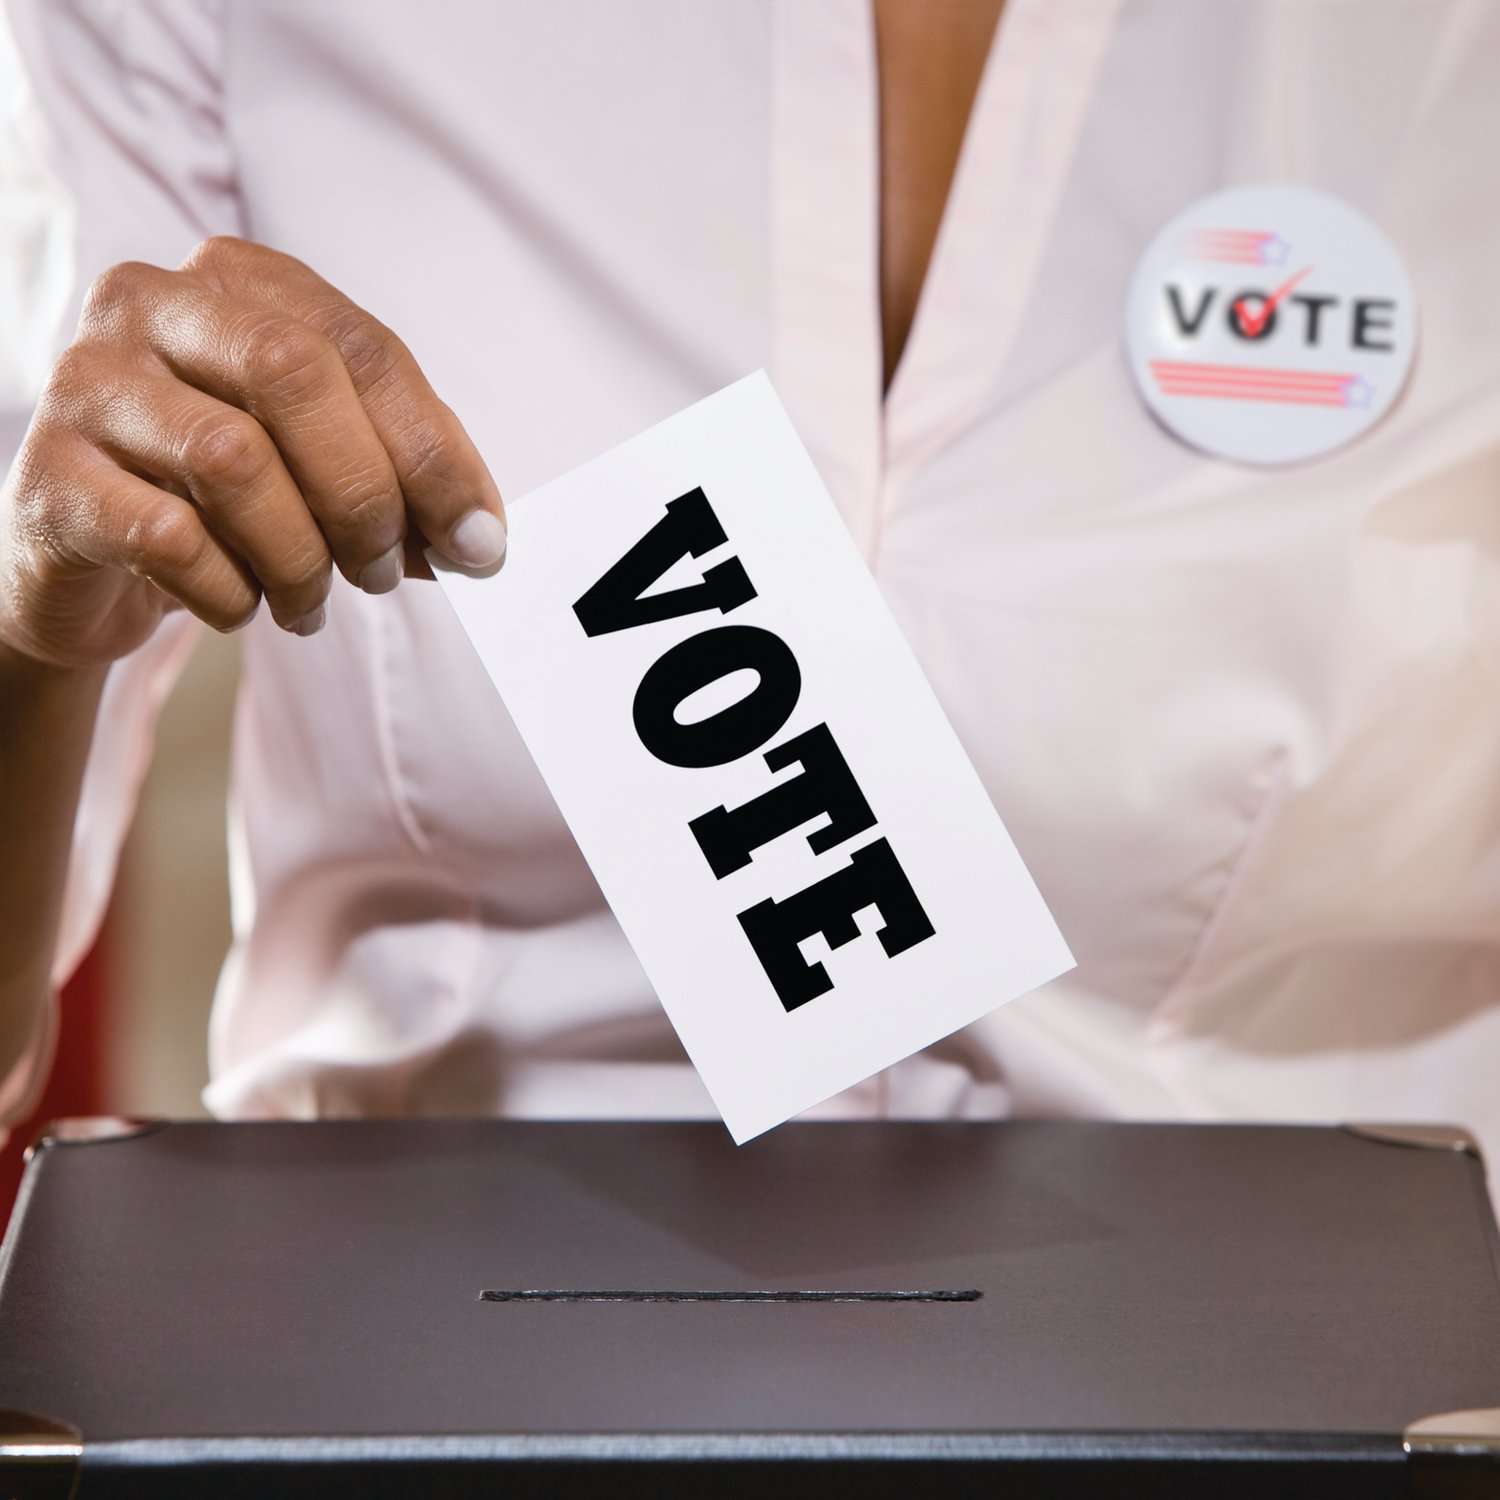 Voters can vote by absentee ballot, early vote or vote on Election Day this year.